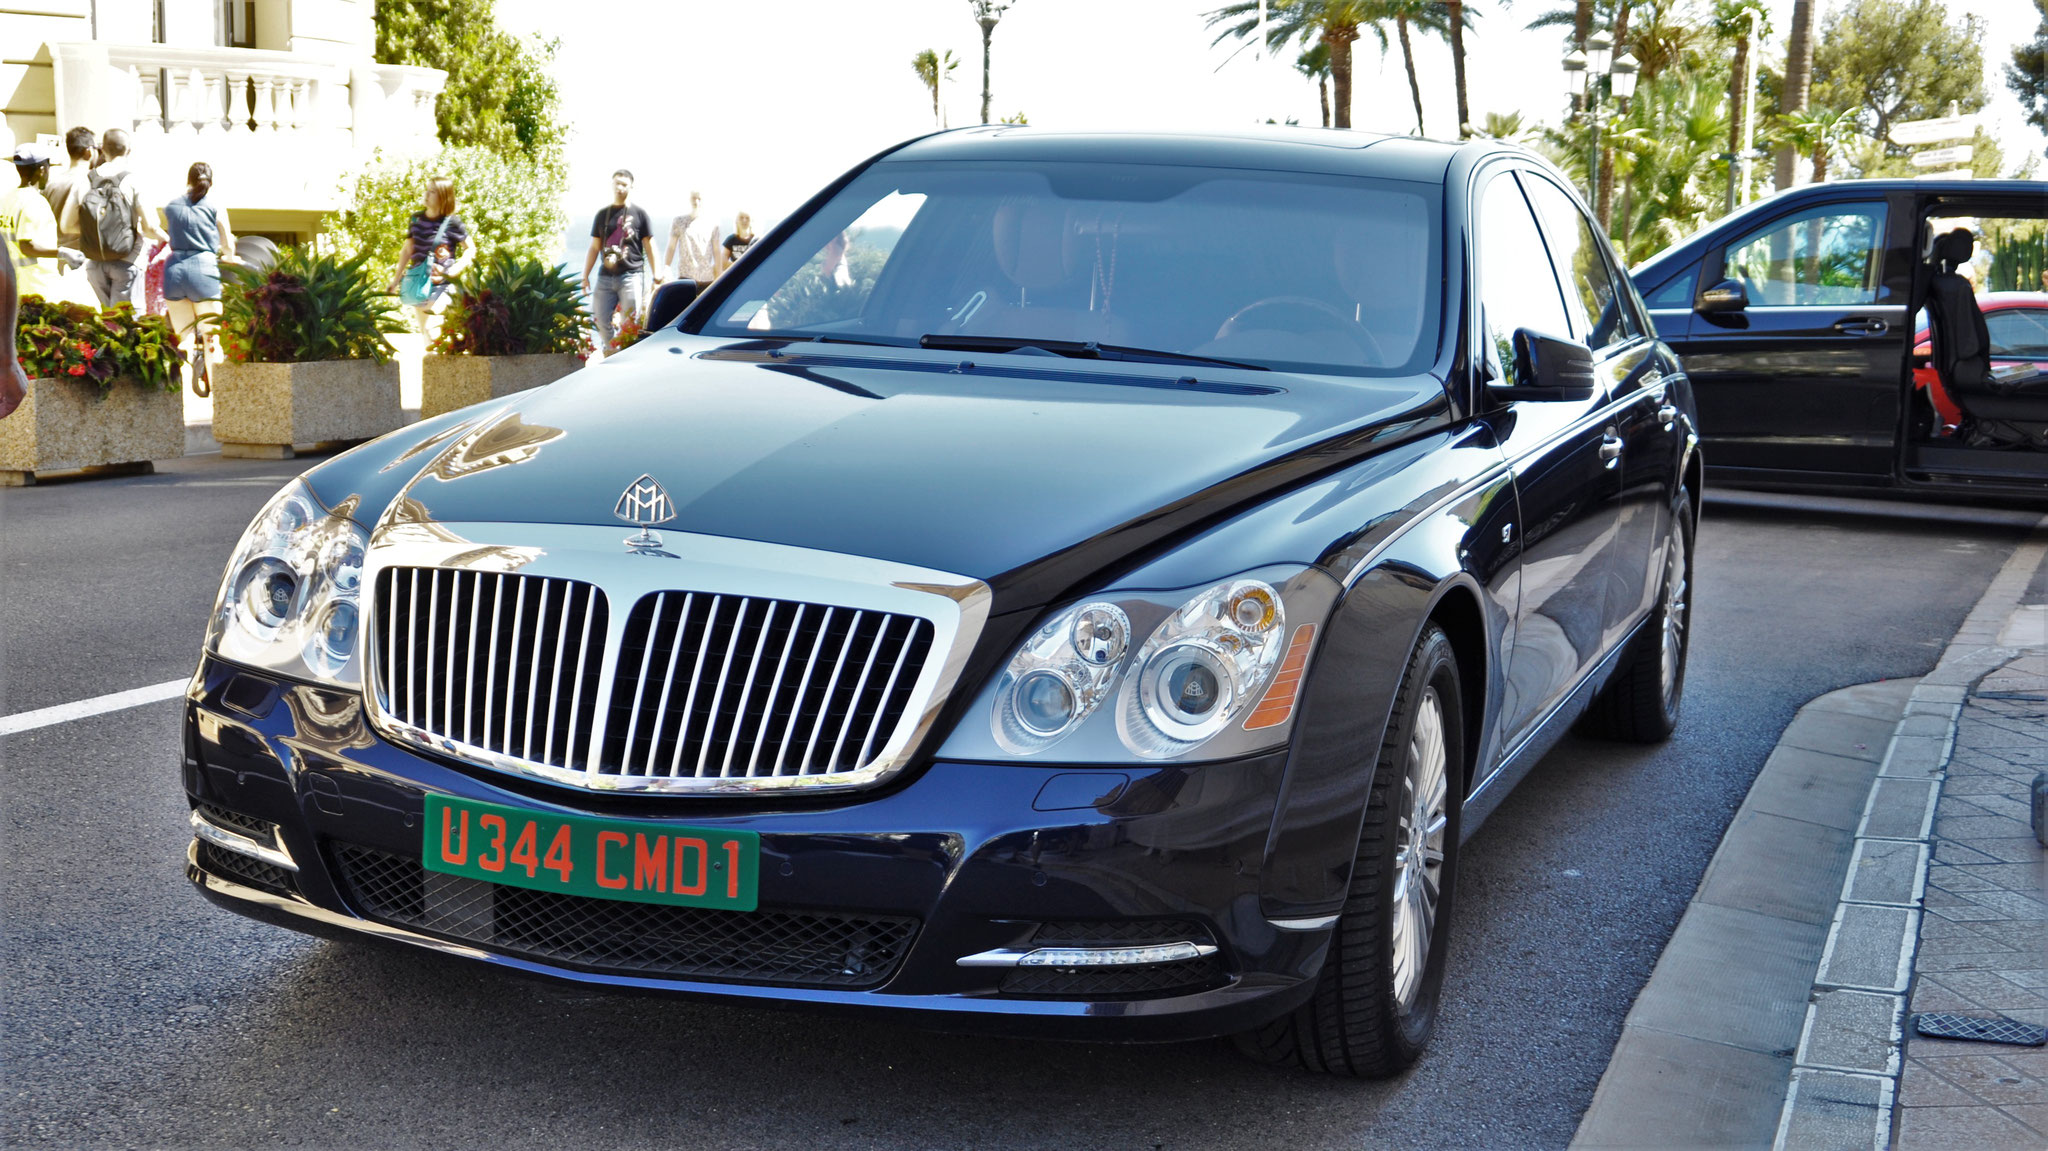 Maybach 57S - U344-CMD1 (FRA)